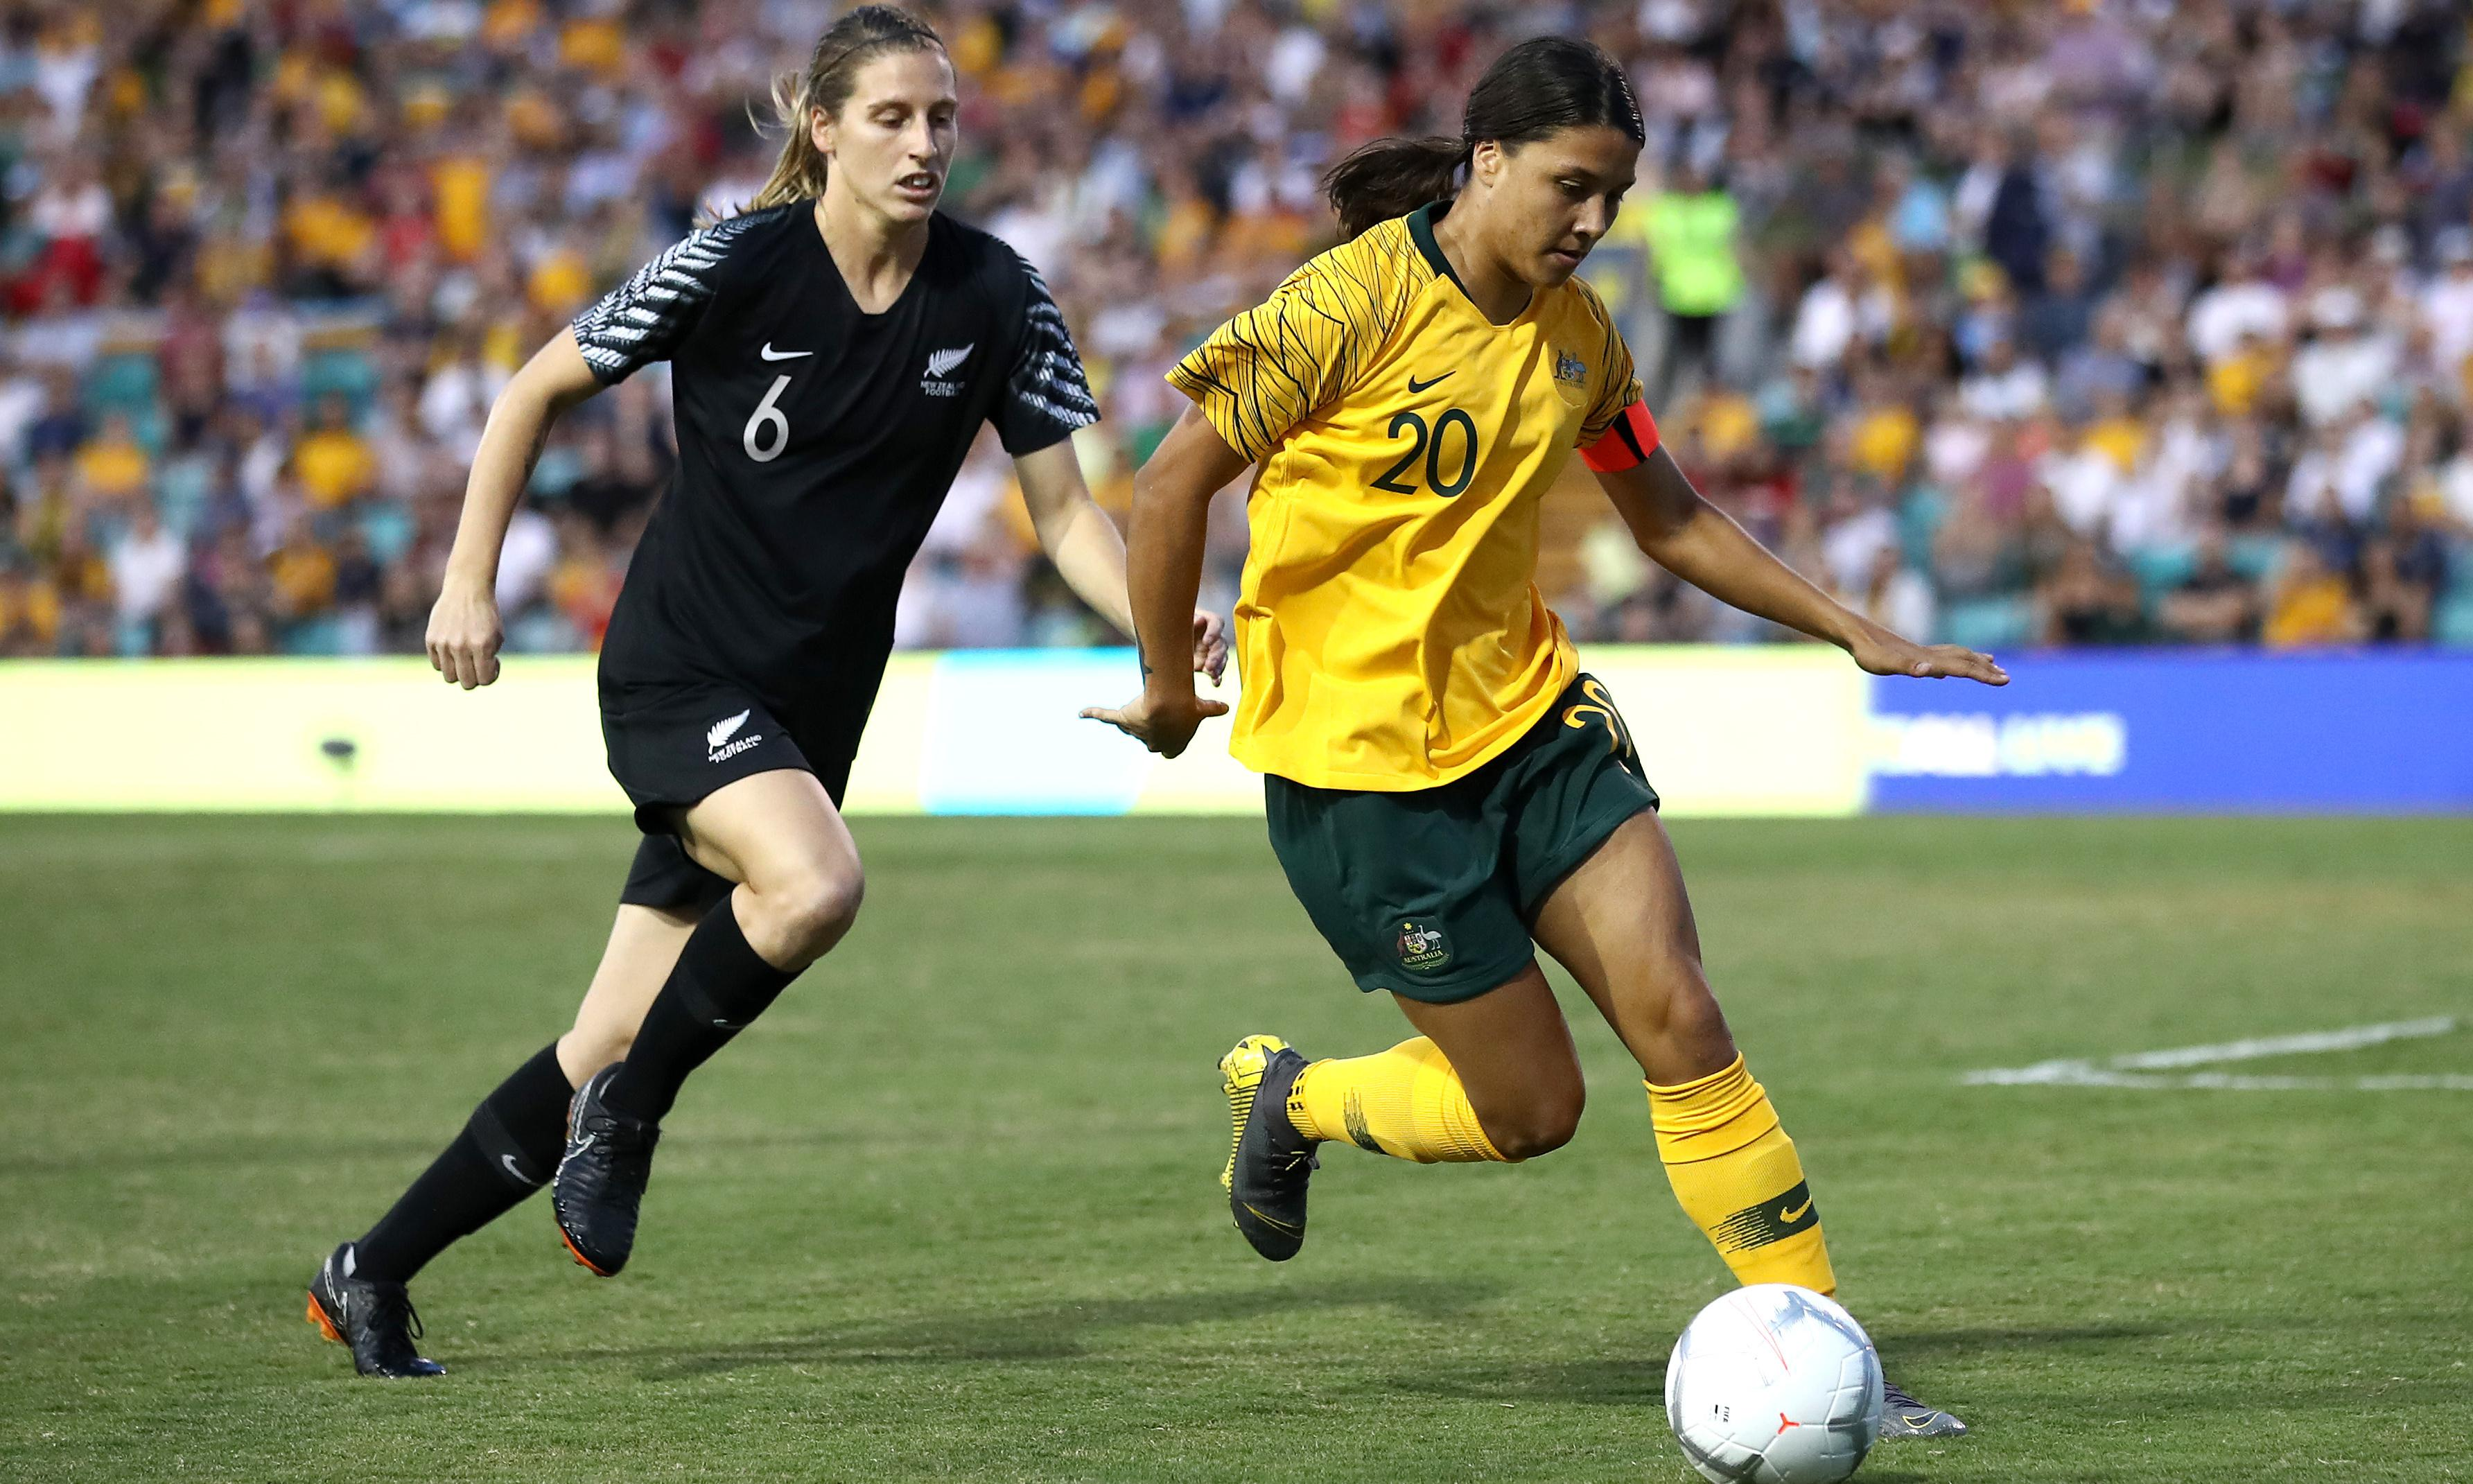 Australia and New Zealand join forces for 2023 Women's World Cup bid